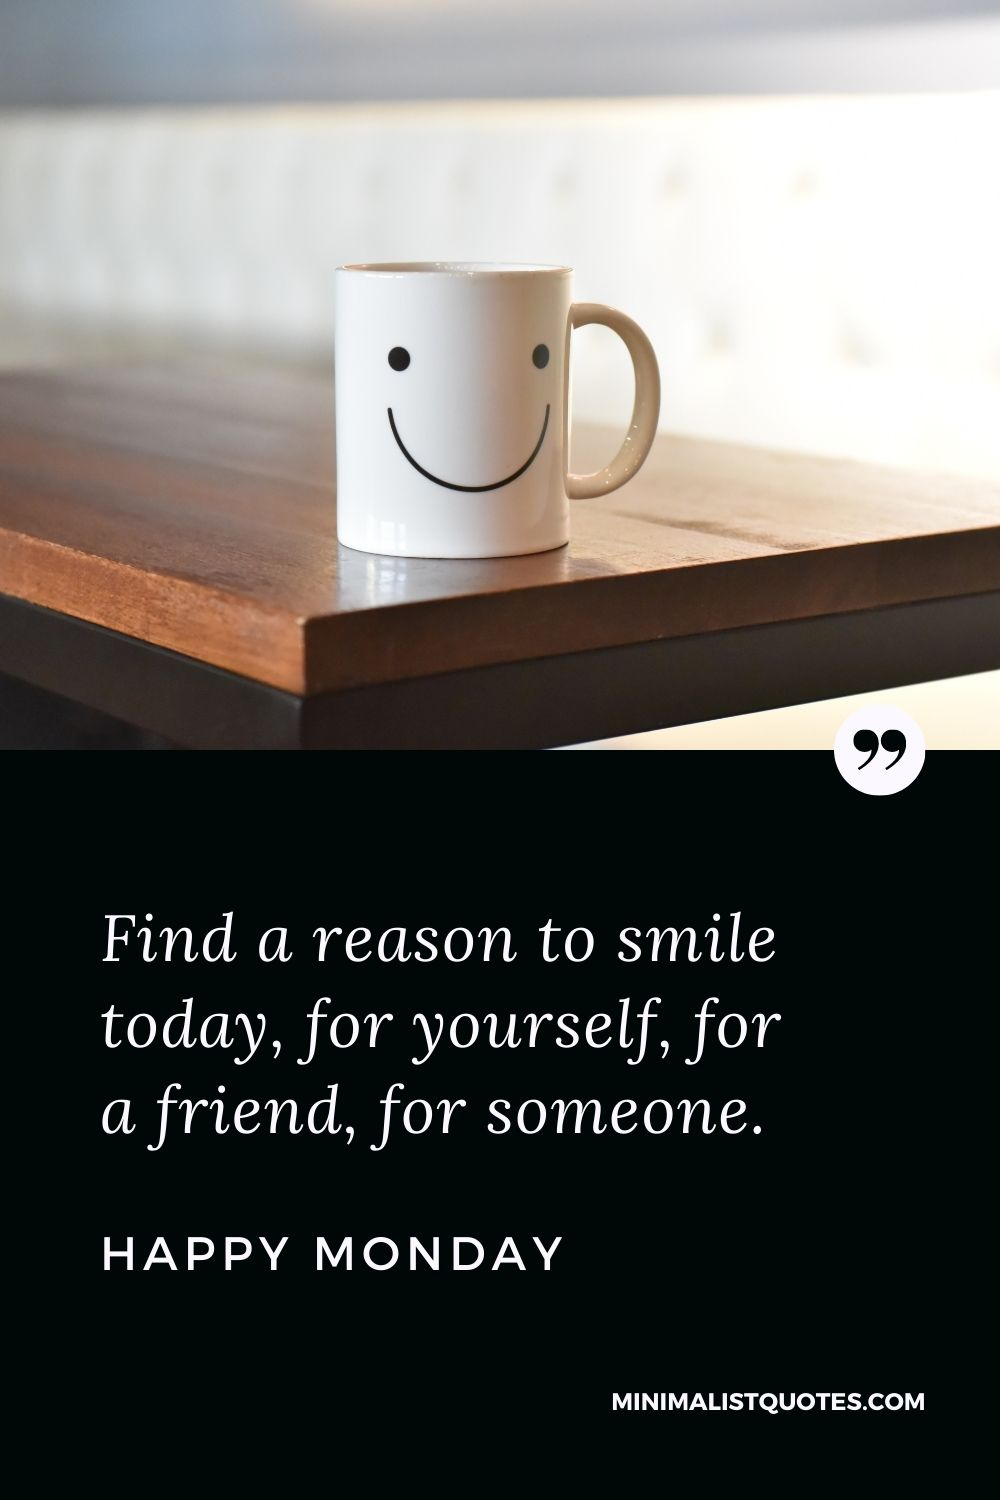 Monday Motivation Quote & Message with Image: Find a reason to smile today, for yourself, for a friend, for someone. Happy Monday!